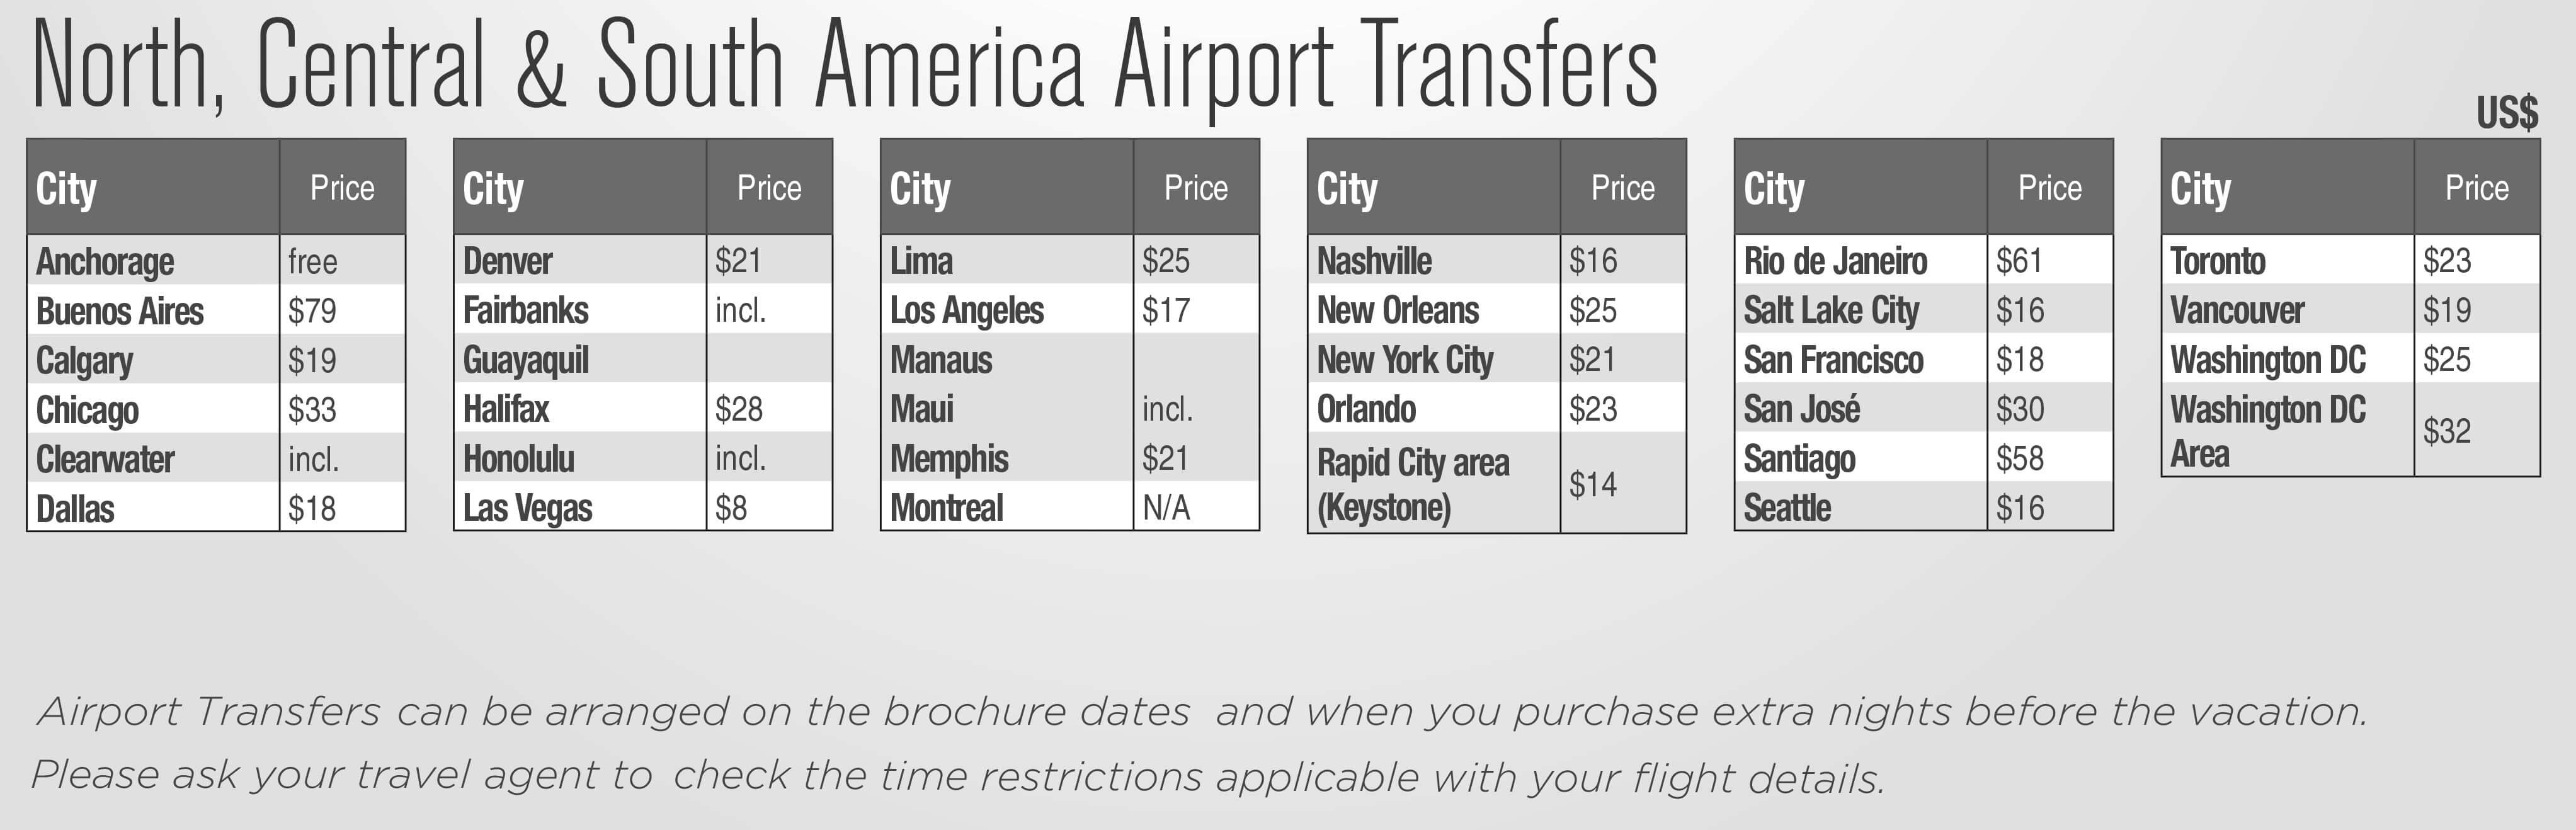 North America Extra Night Pricing